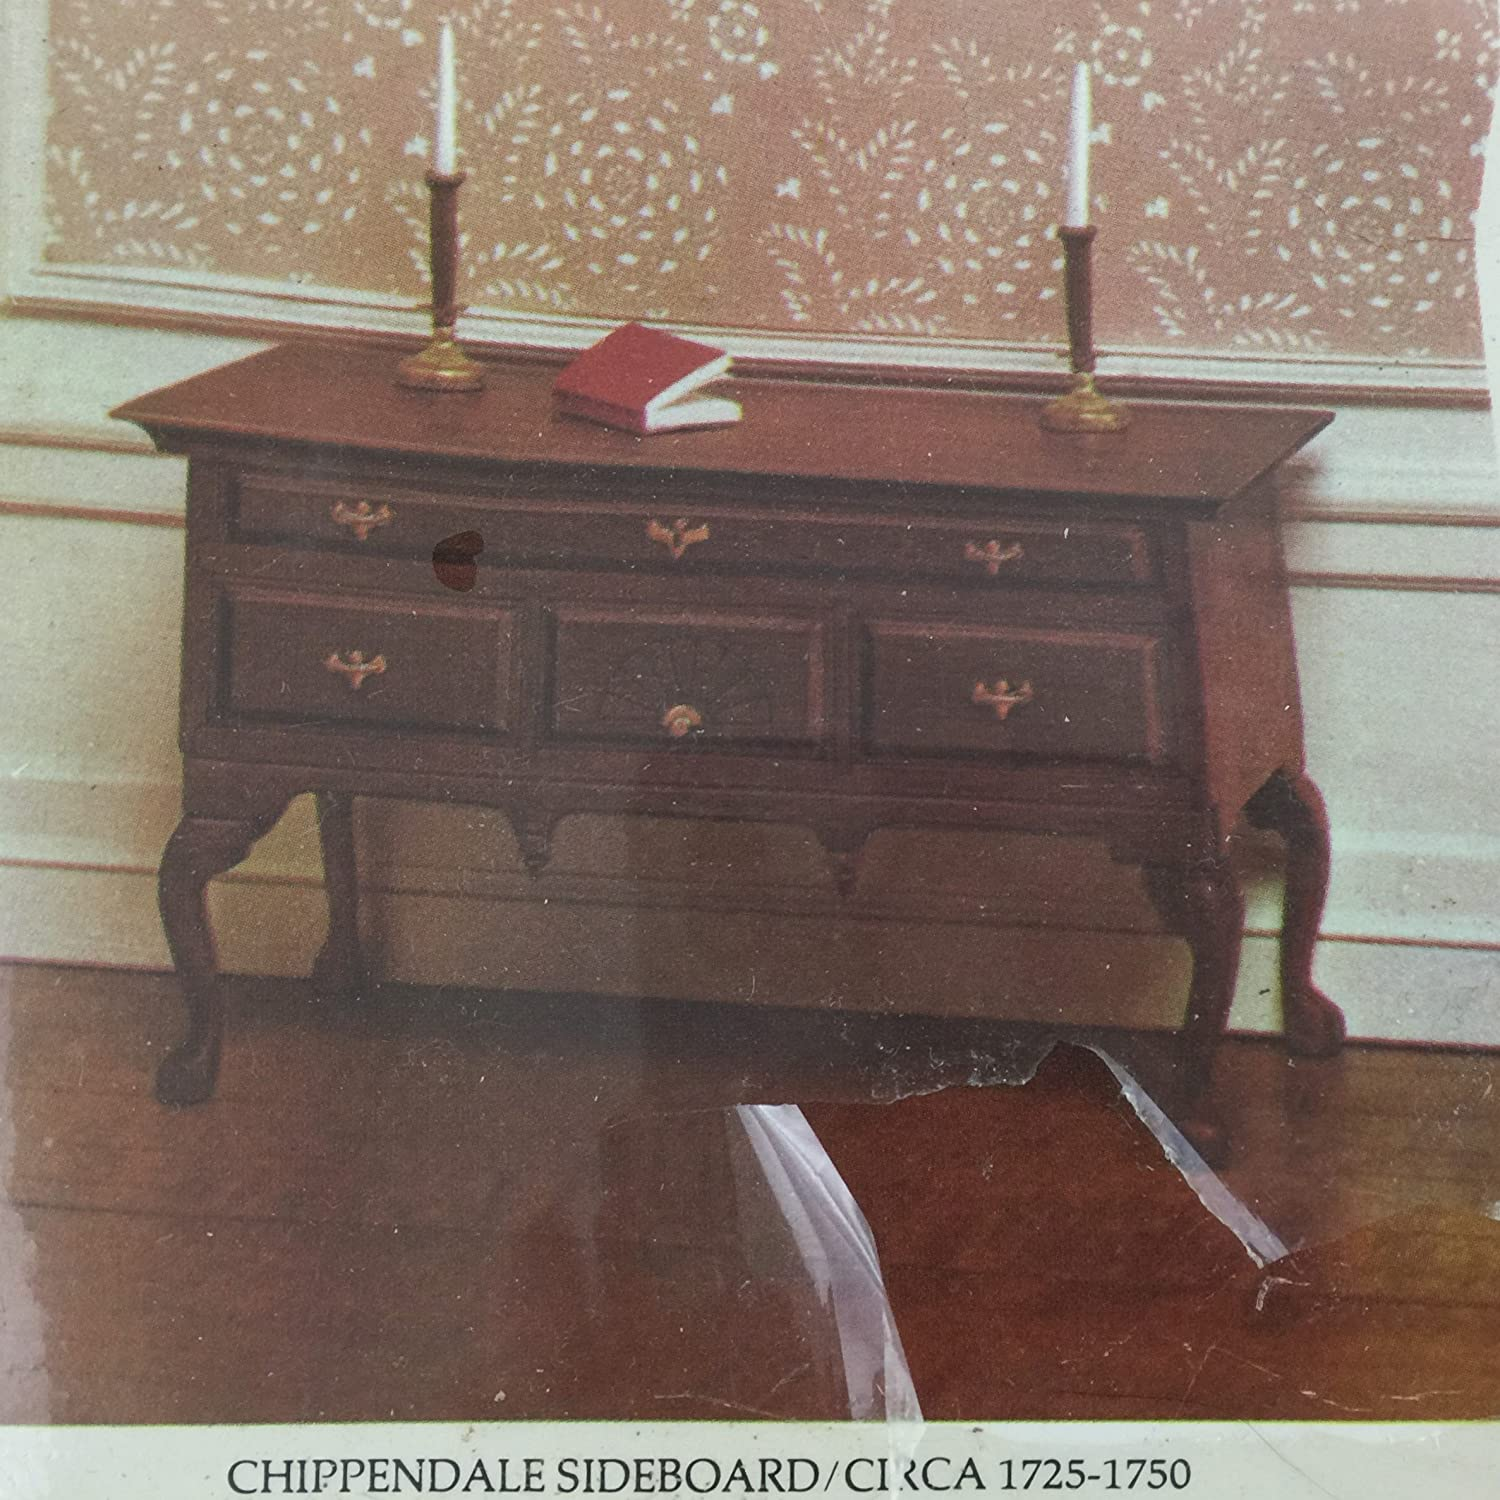 Amazon.com: House of Miniatures Chippendale Sideboard #40025 (C. 1770) -  Sealed: Toys & Games